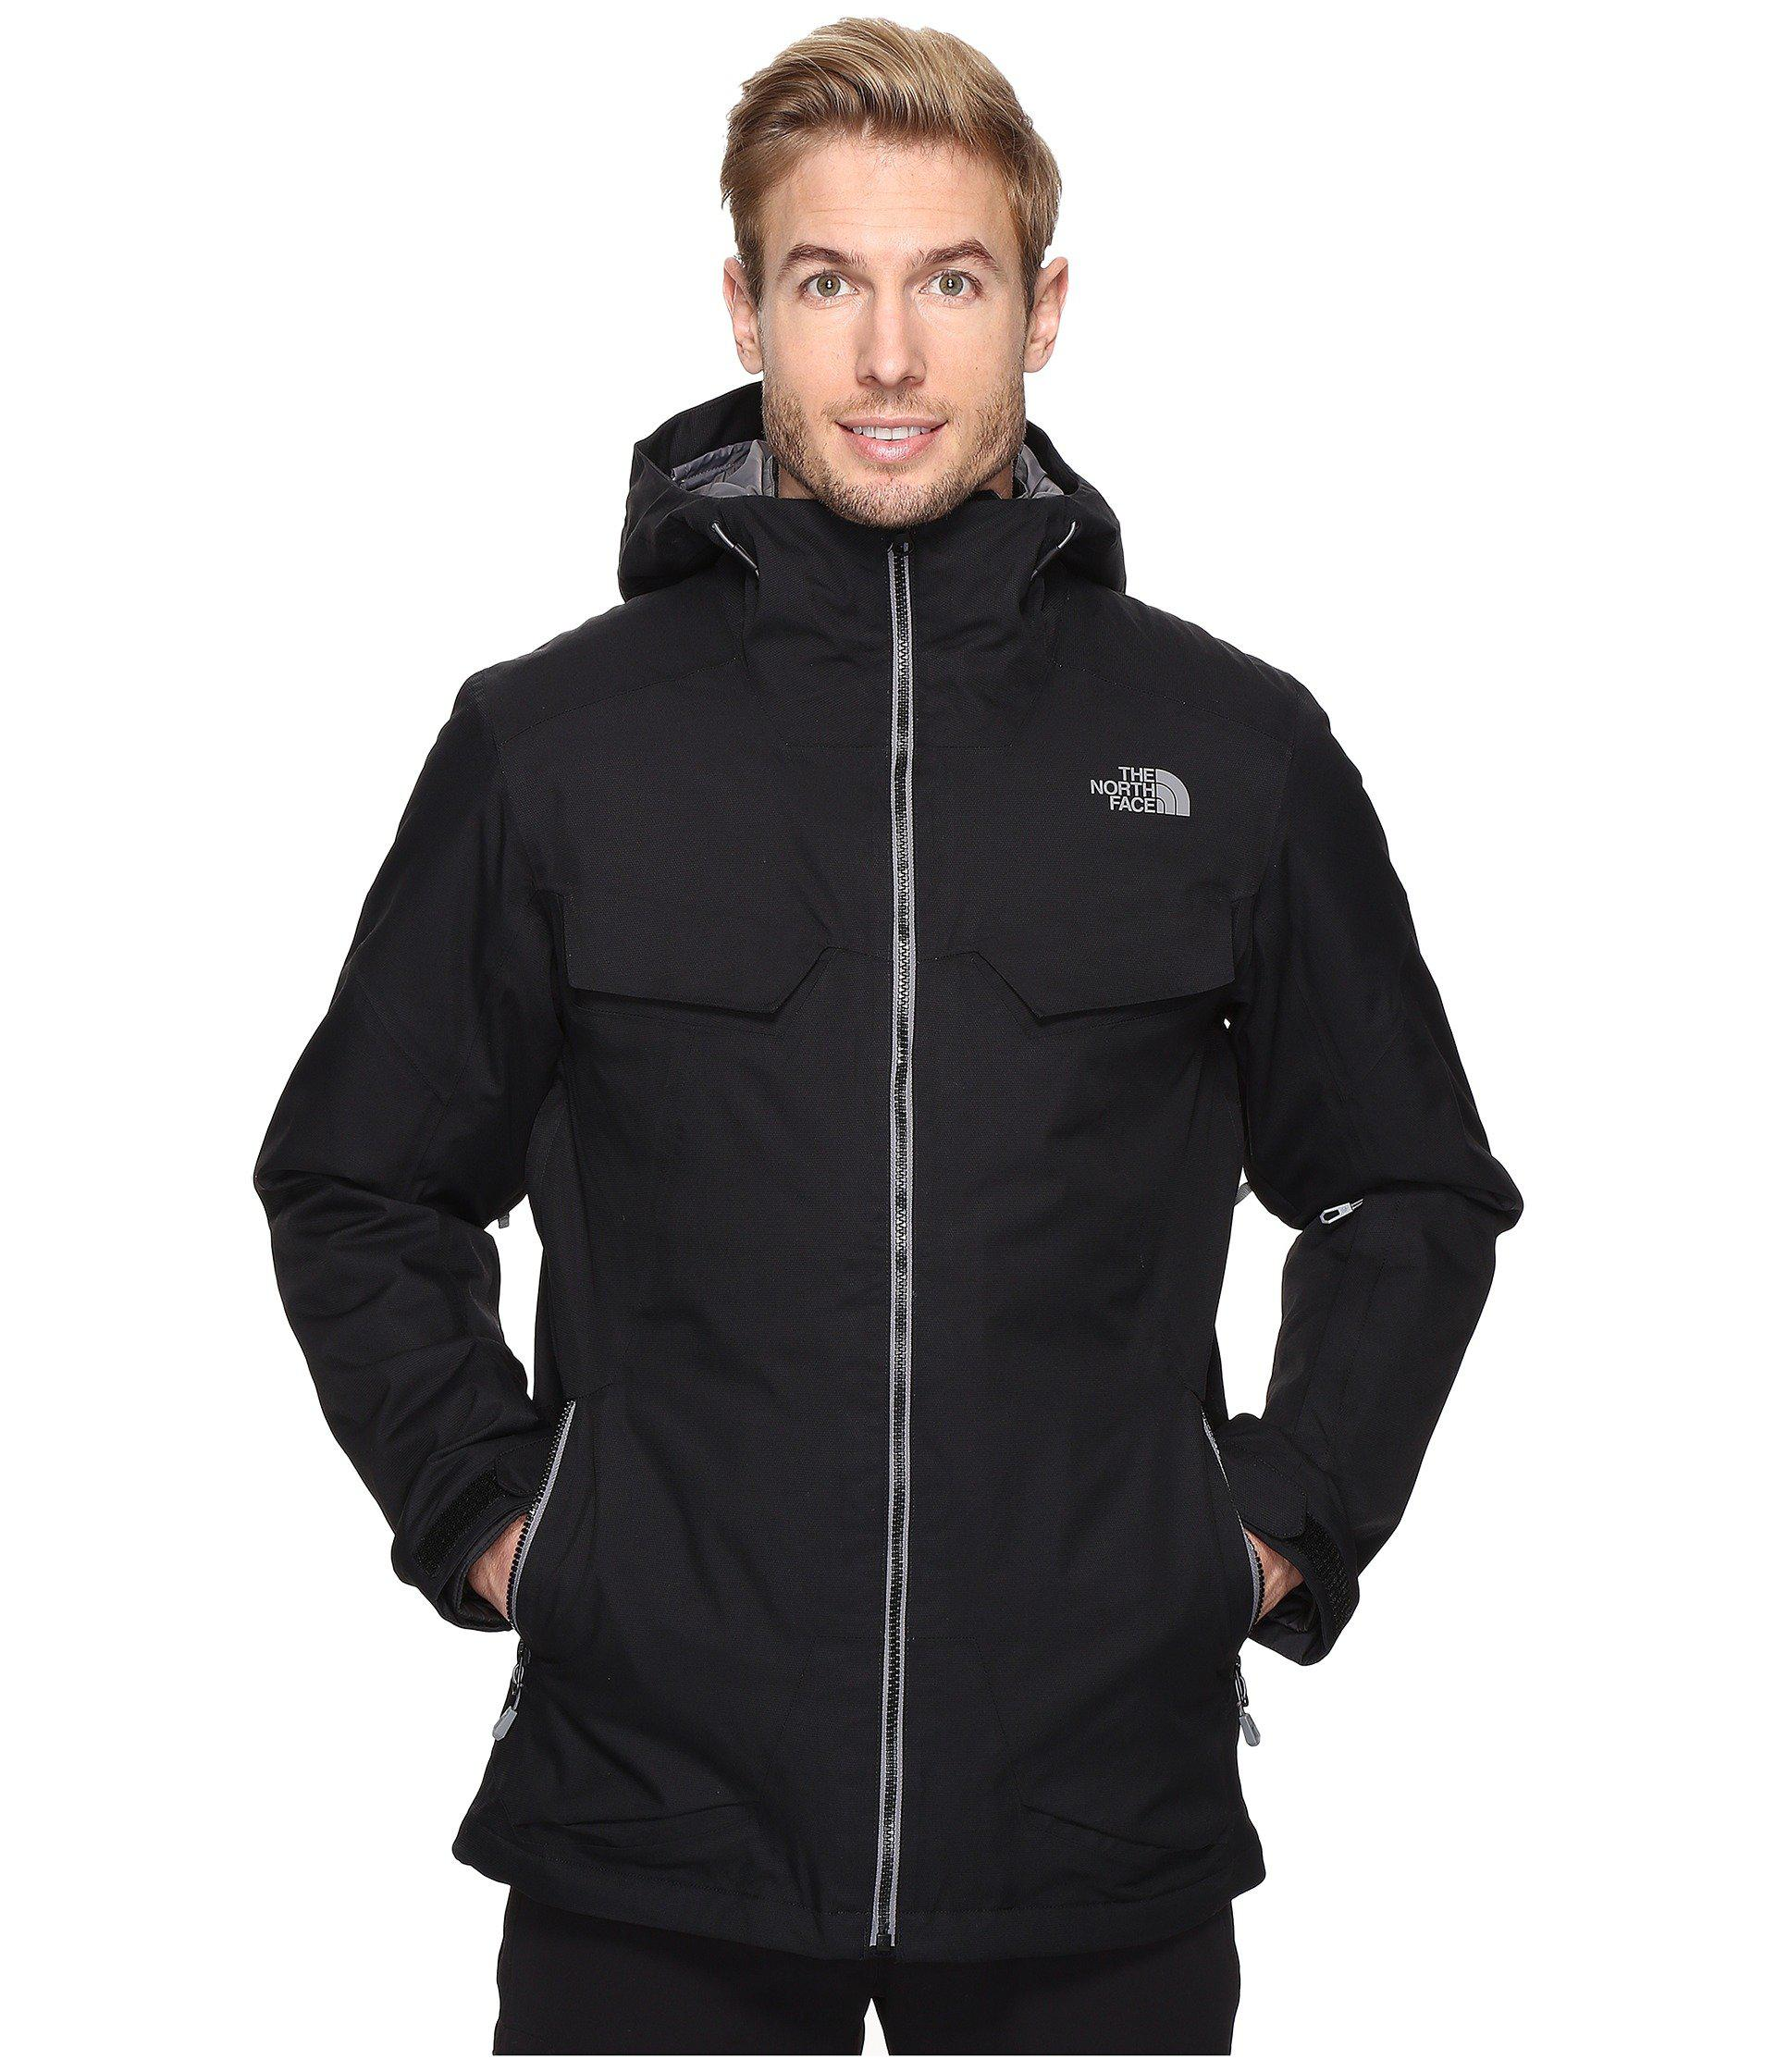 07ba74bc94d Lyst - The North Face Initiator Thermoball Triclimate Jacket in ...